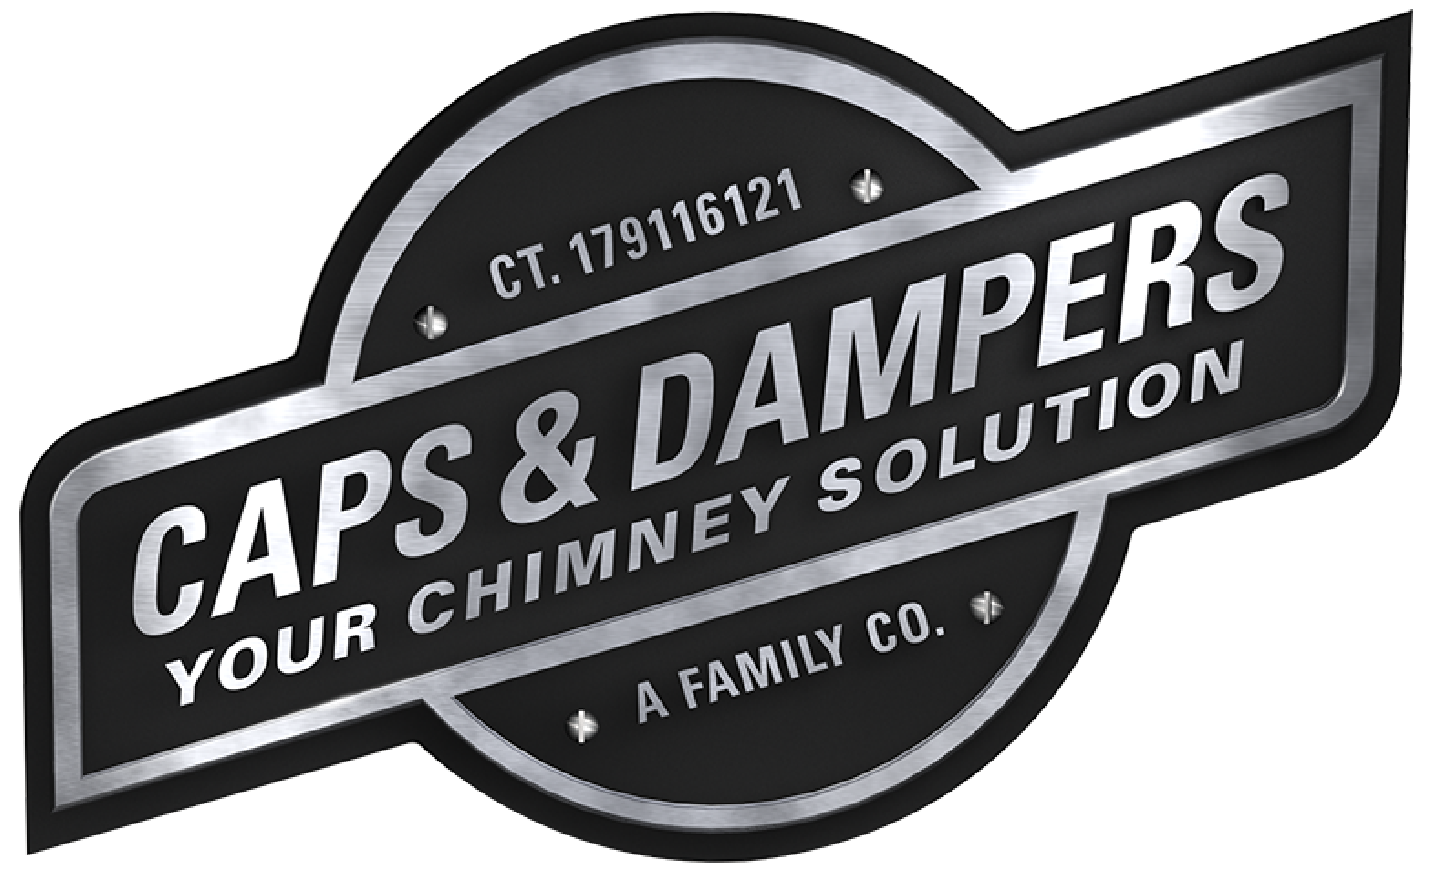 Caps & Dampers Chimney Services are Warming Homes, Warming the Homeless